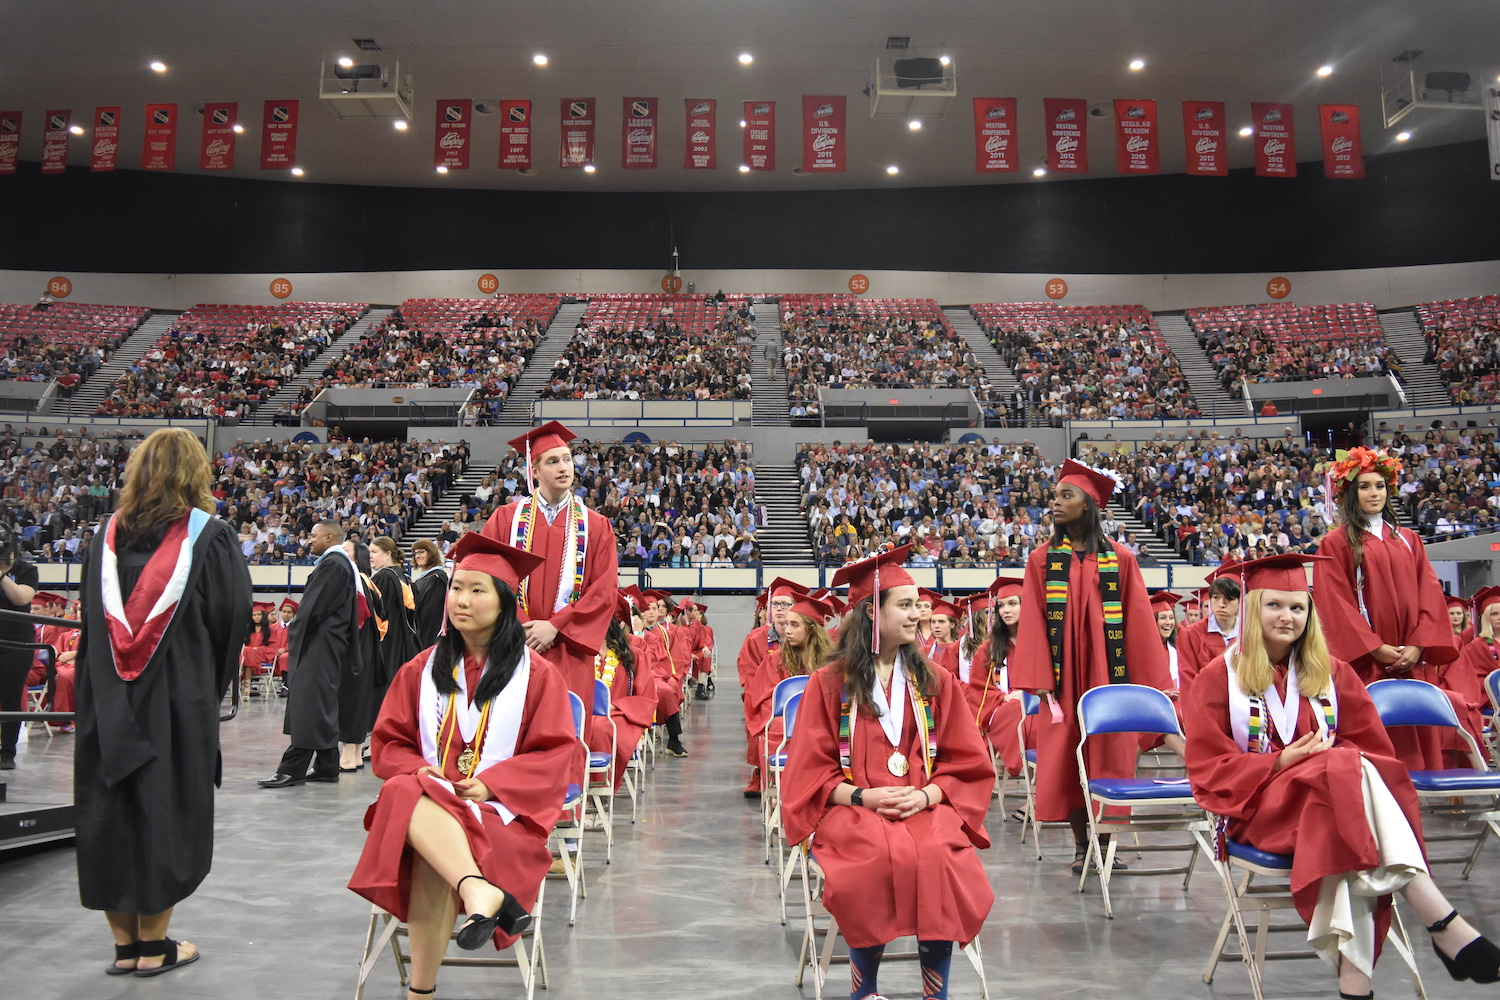 Chicago now requires college or job to graduate. Should PPS do the same?